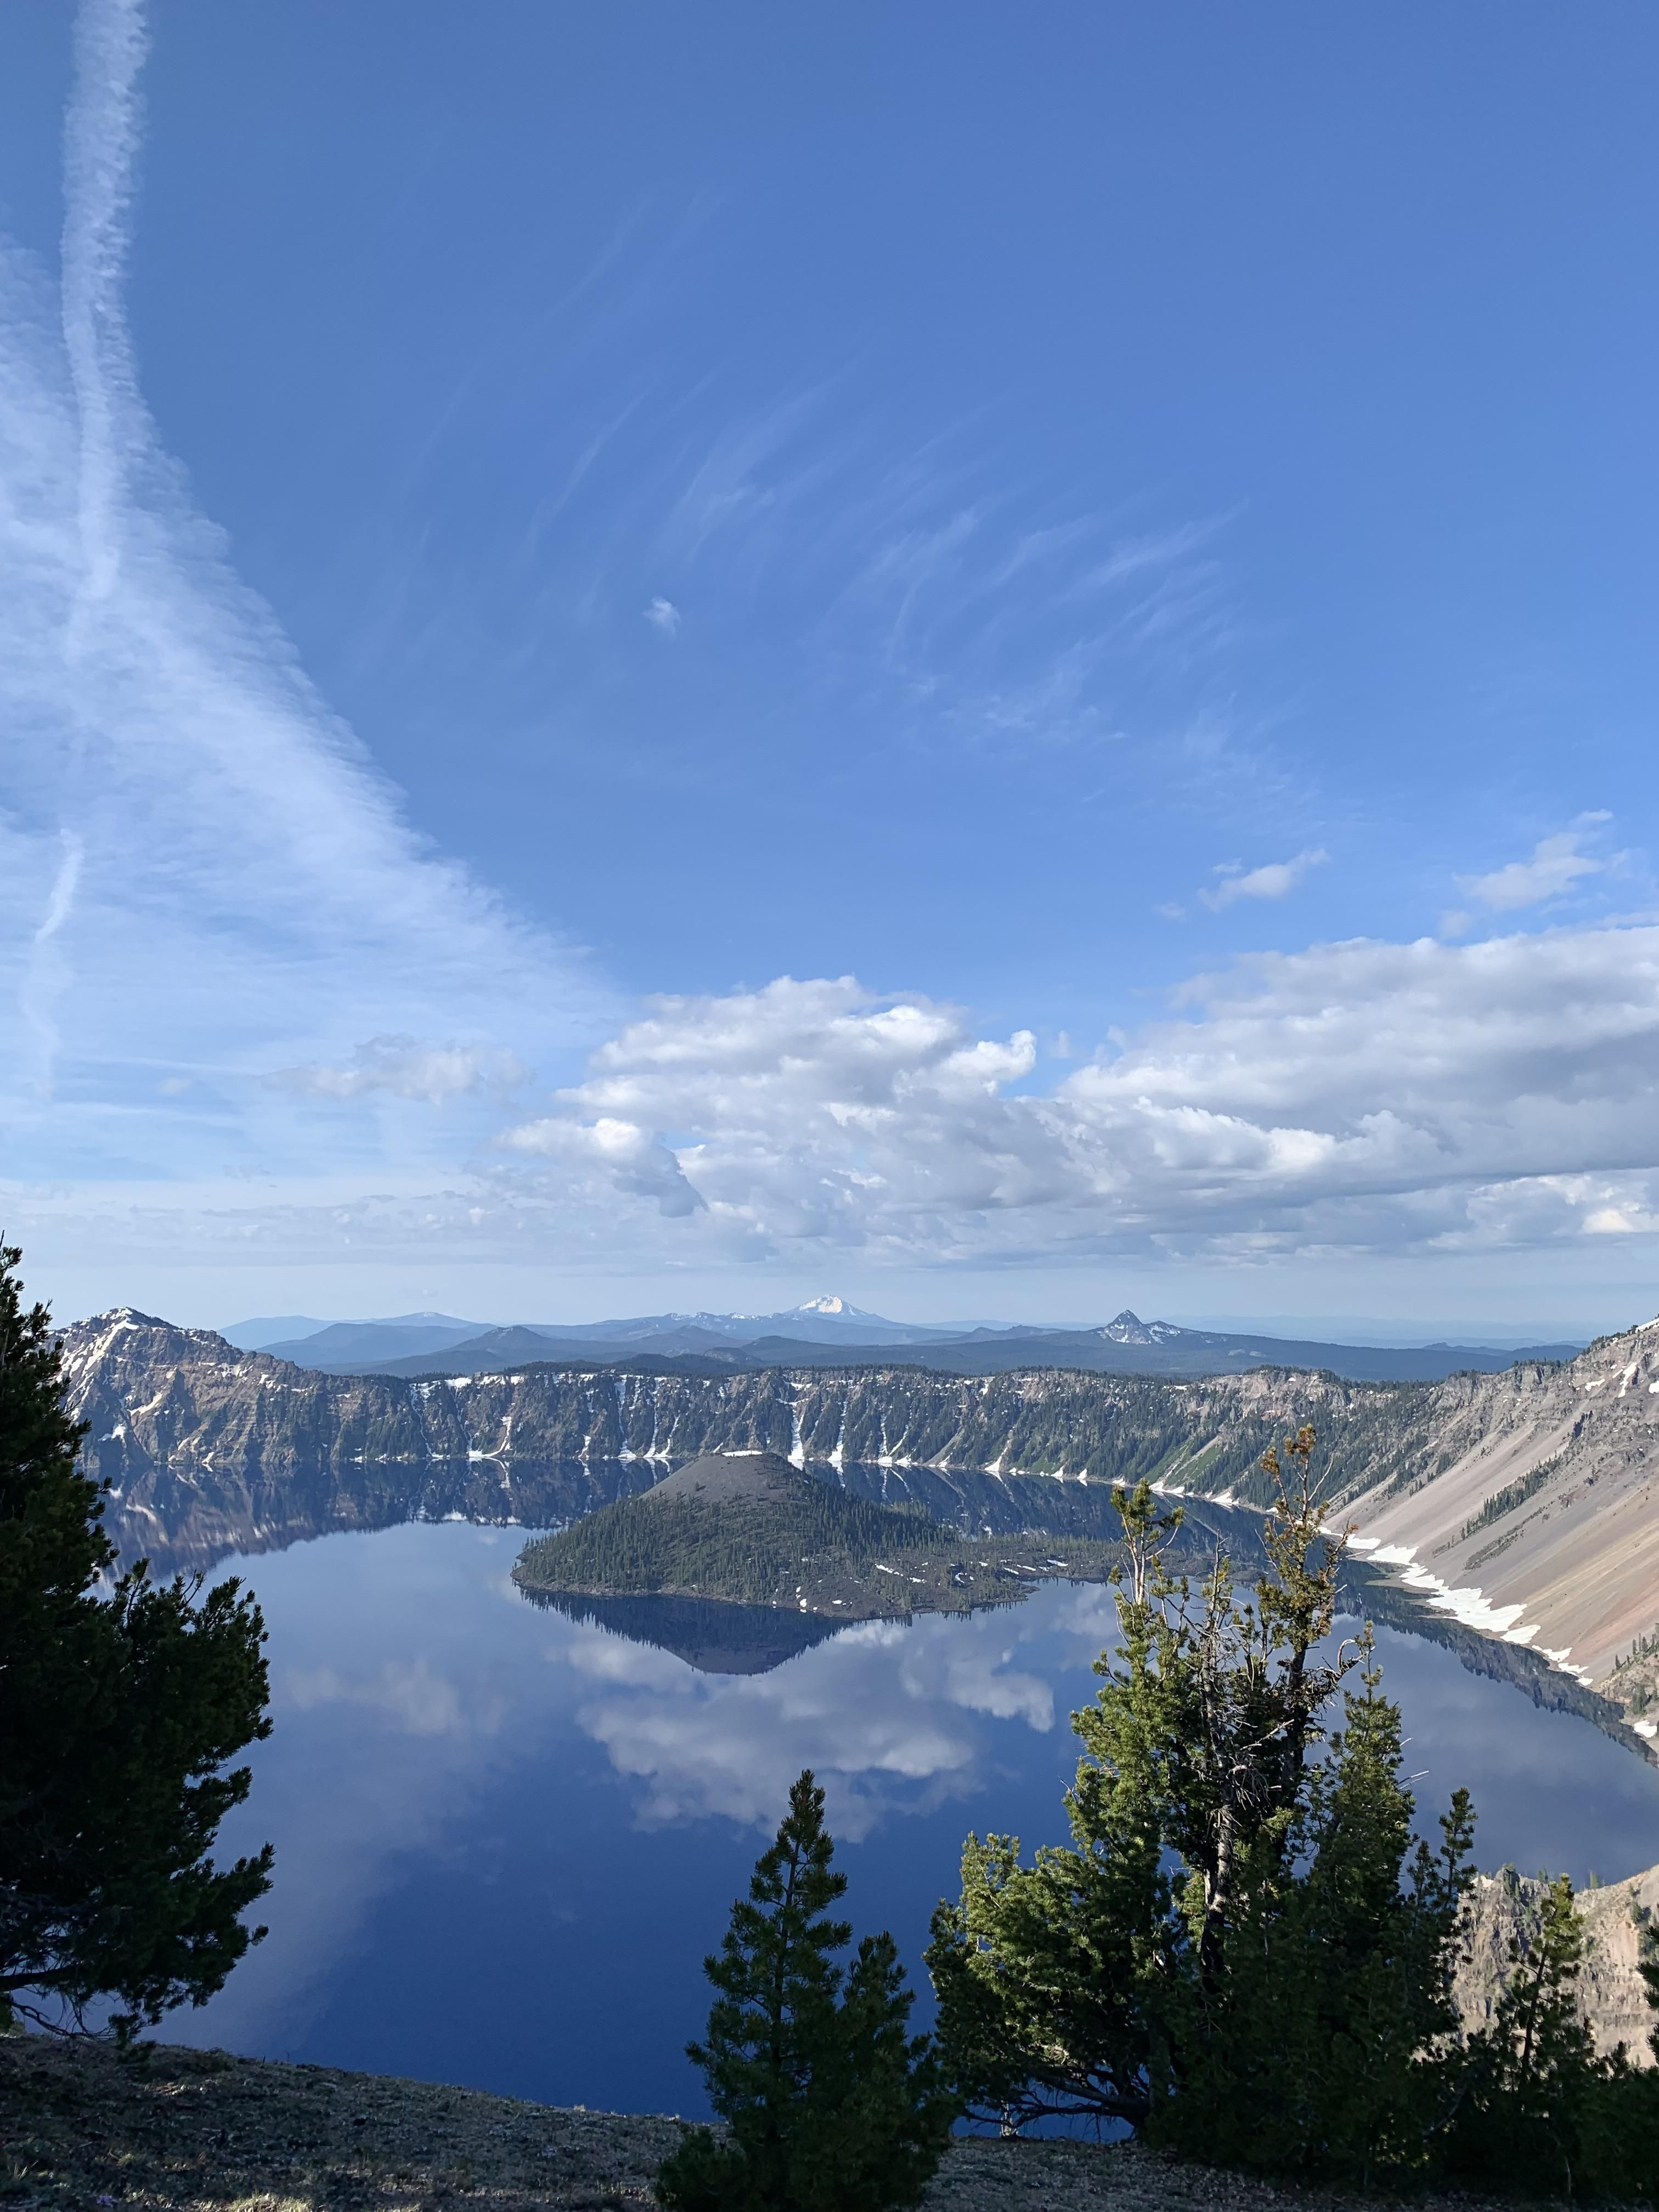 One of the most surreal camping trips Ive been on. Crater Lake National Park Oregon USA #hiking #camping #outdoors #nature #travel #backpacking #adventure #marmot #outdoor #mountains #photography #craterlakenationalpark One of the most surreal camping trips Ive been on. Crater Lake National Park Oregon USA #hiking #camping #outdoors #nature #travel #backpacking #adventure #marmot #outdoor #mountains #photography #craterlakeoregon One of the most surreal camping trips Ive been on. Crater Lake Nat #craterlakenationalpark